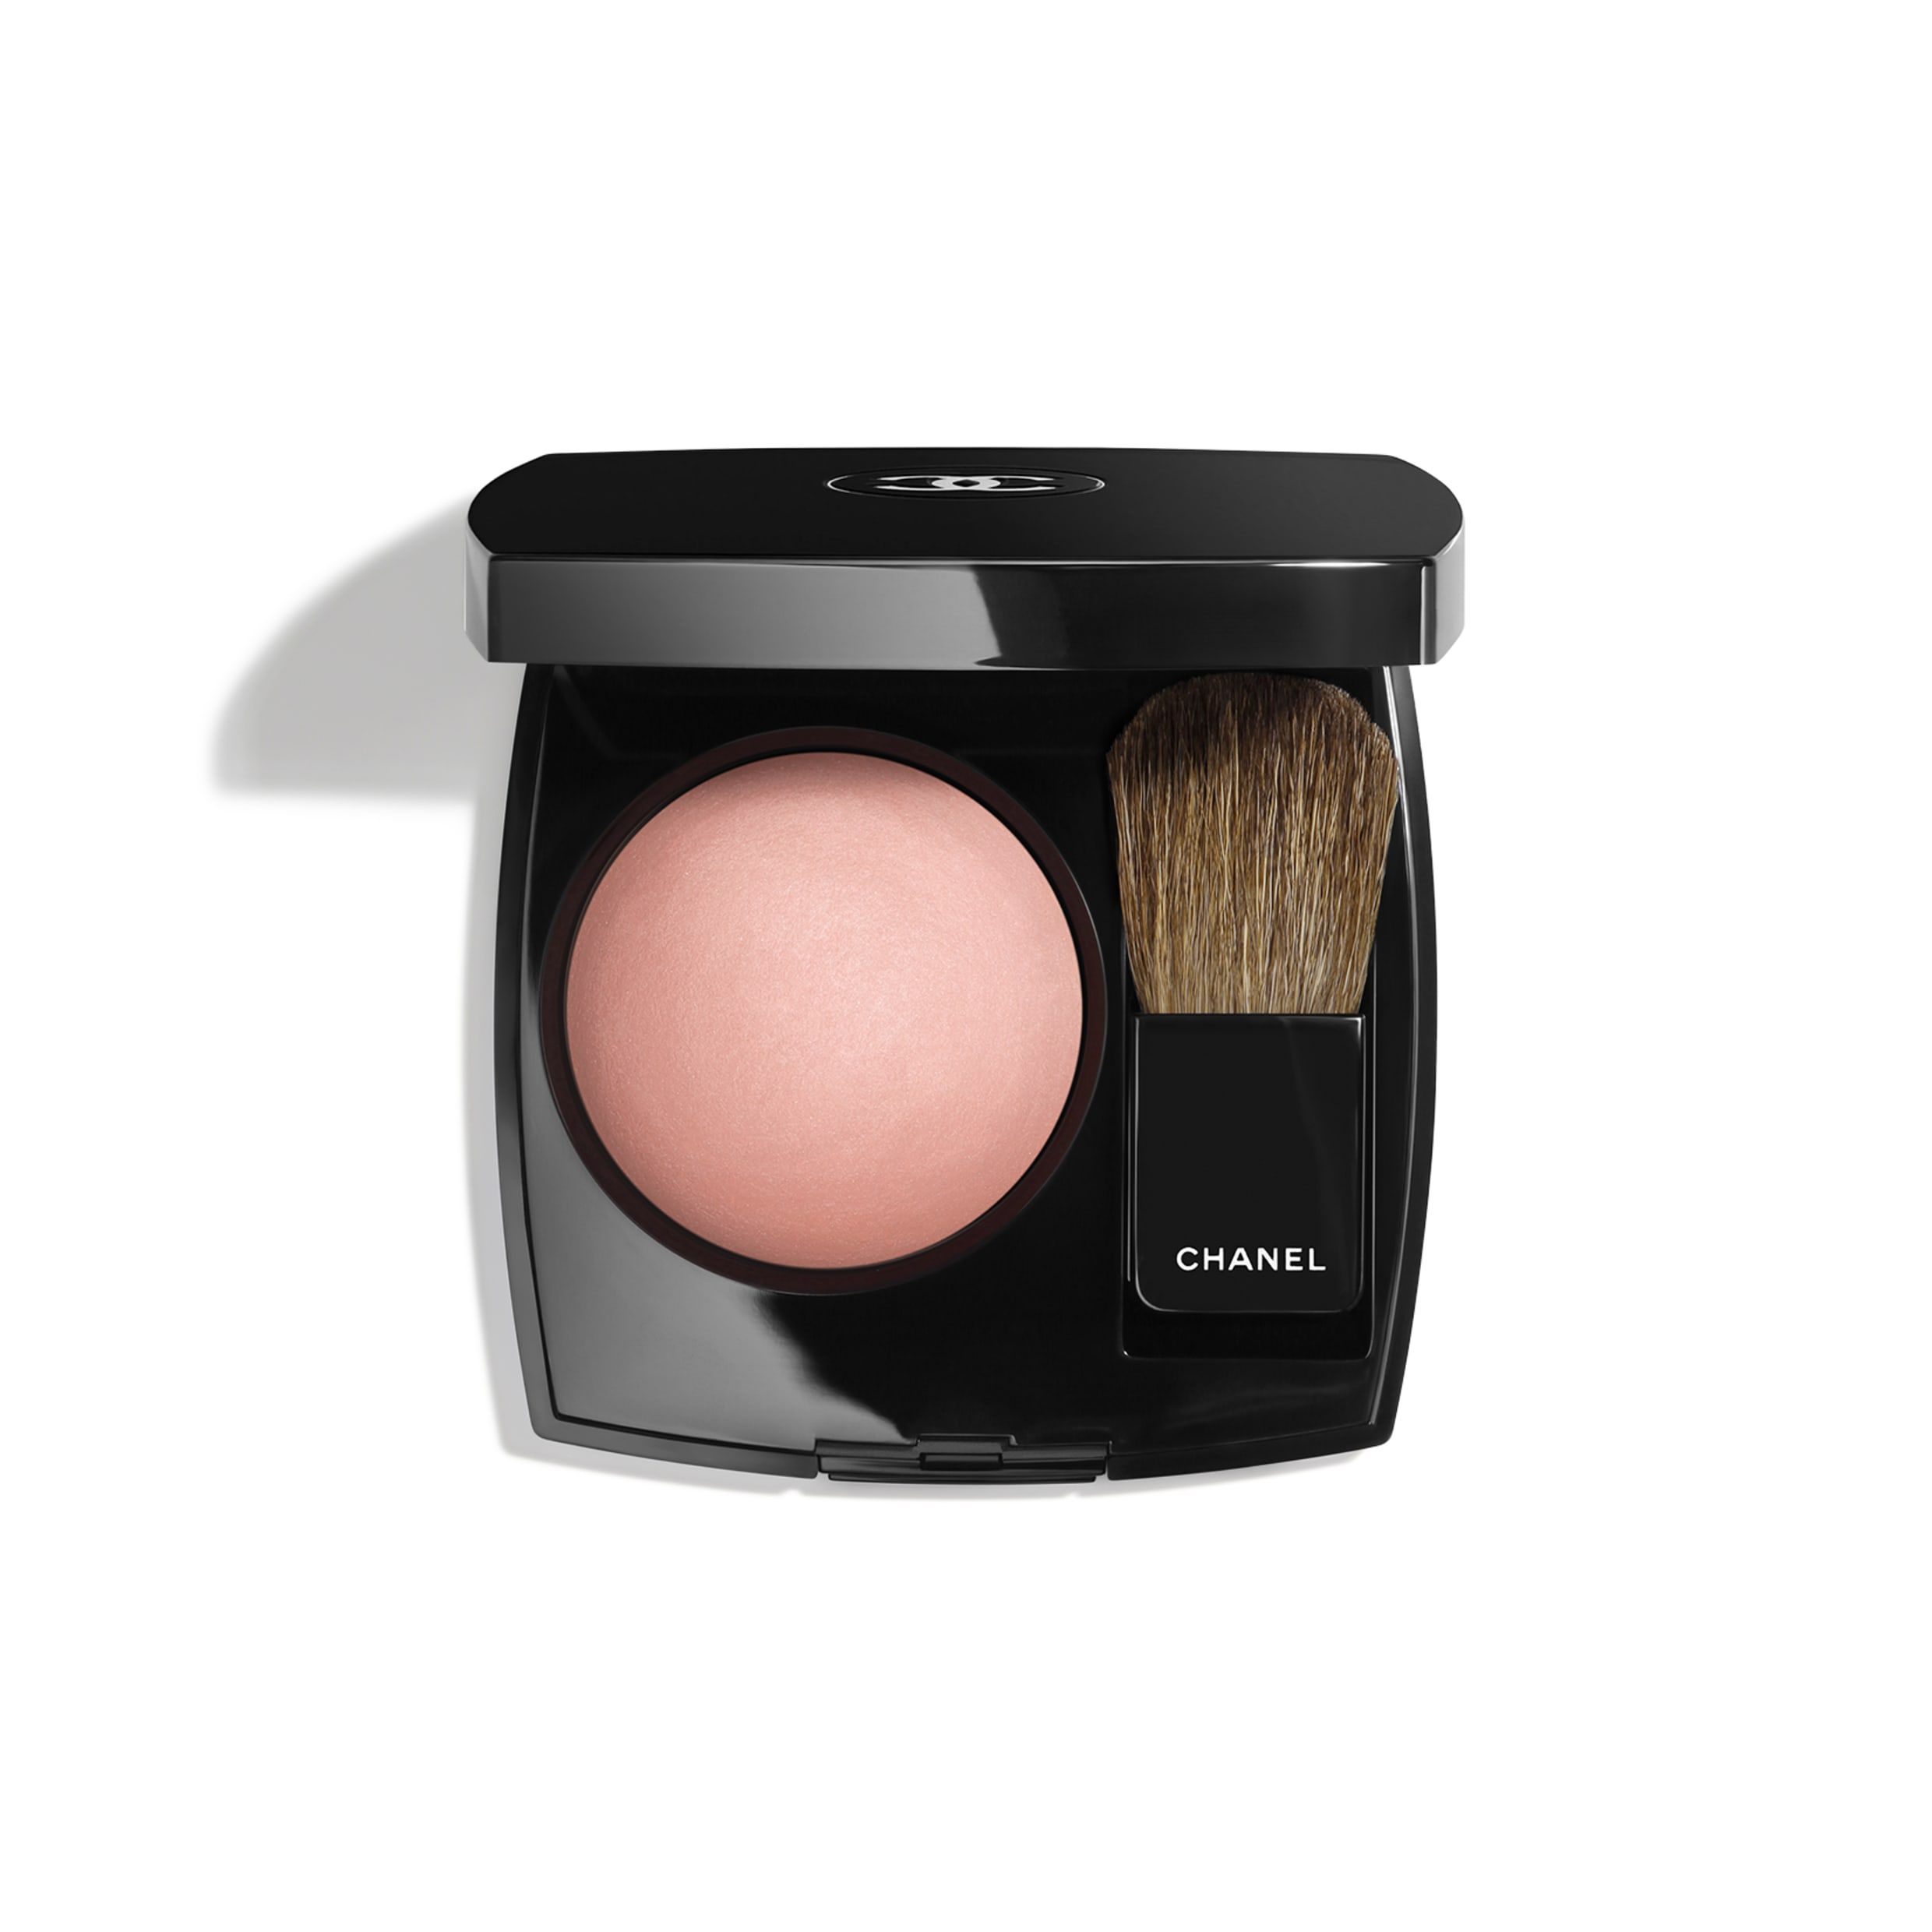 JOUES CONTRASTE Powder Blush 99 ROSE PÉTALE in 2020